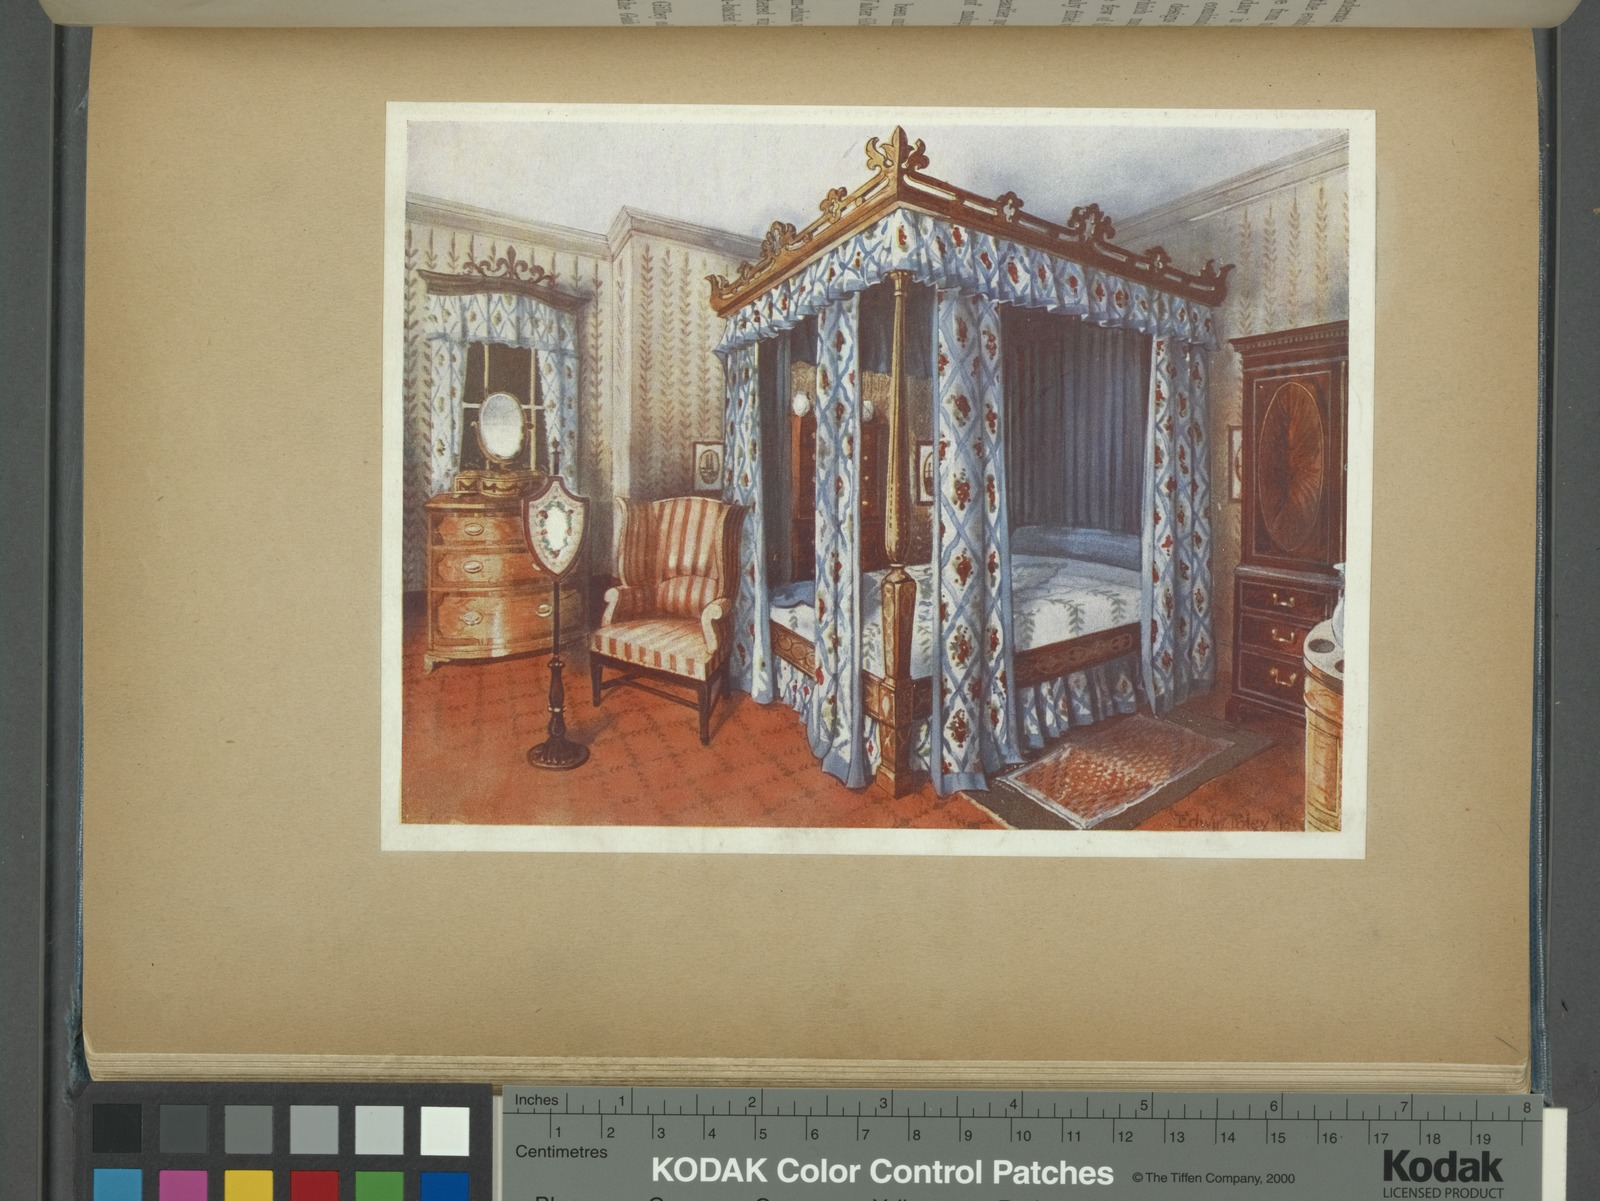 A heppelwhite bedroom. Chintz-curtained inlaid satinwood bed from Dr. Horne's collection. Inlaid satinwood dressing chest and mahogany wardrobe from Sir Walter Gilbey's collection.